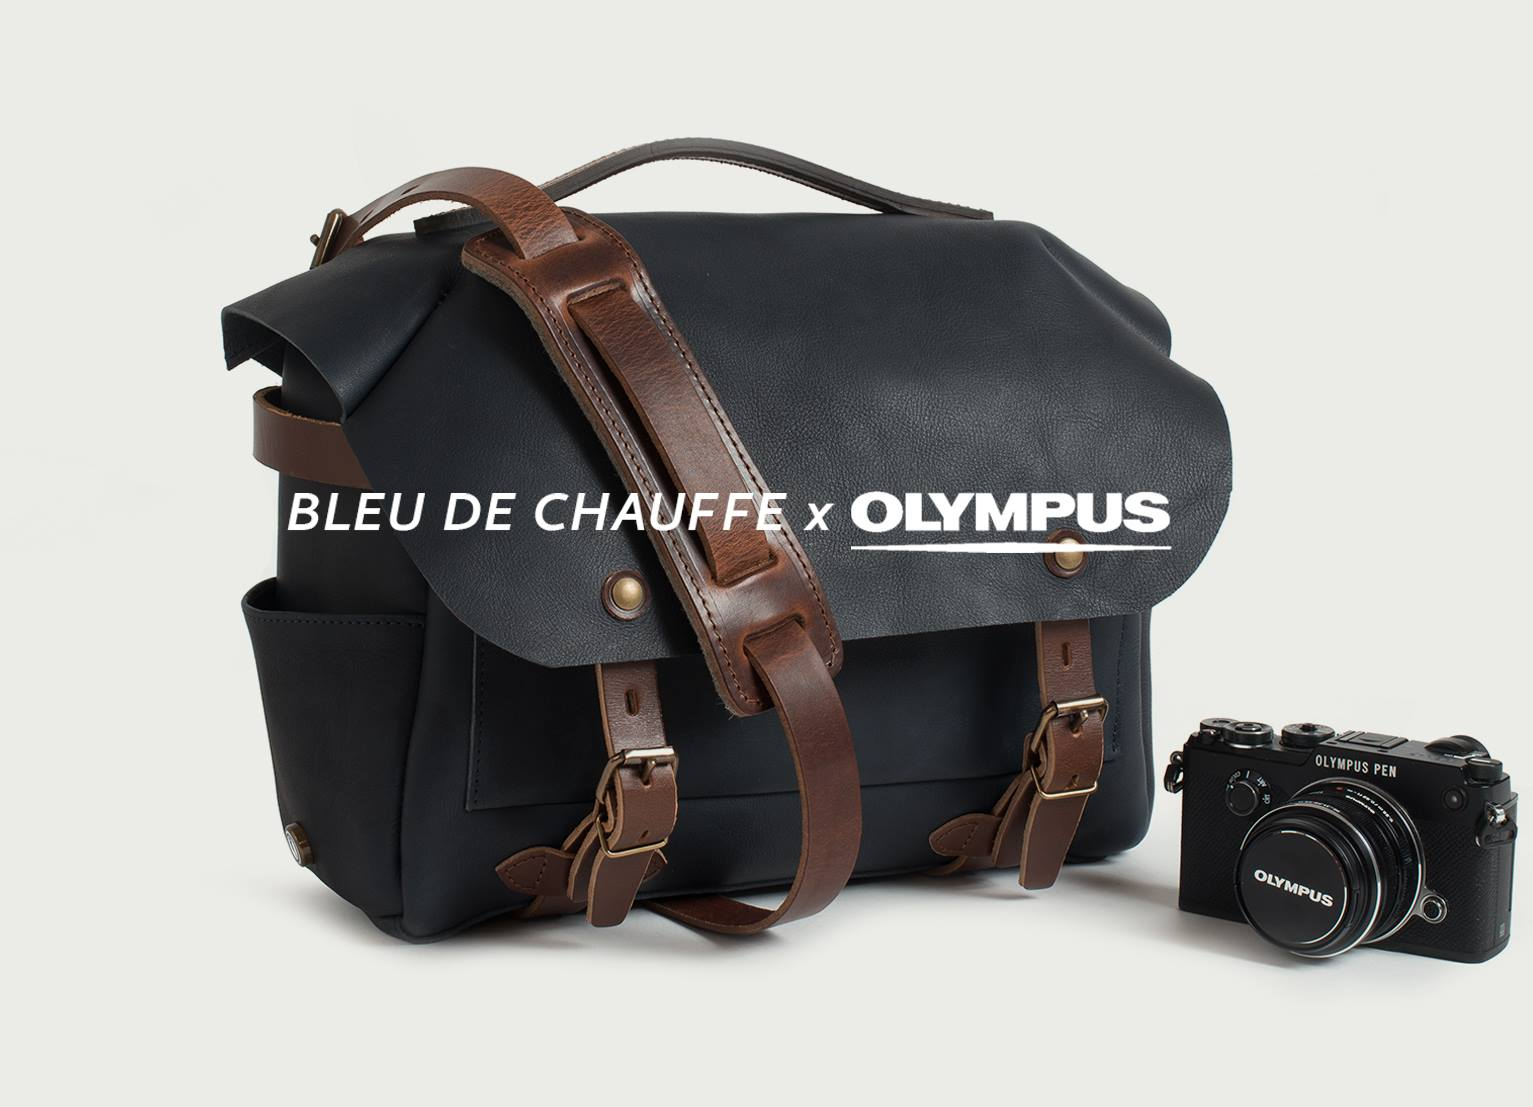 Sac photo : Olympus X Bleu de chauffe lancent une collection de sacs photo cuir